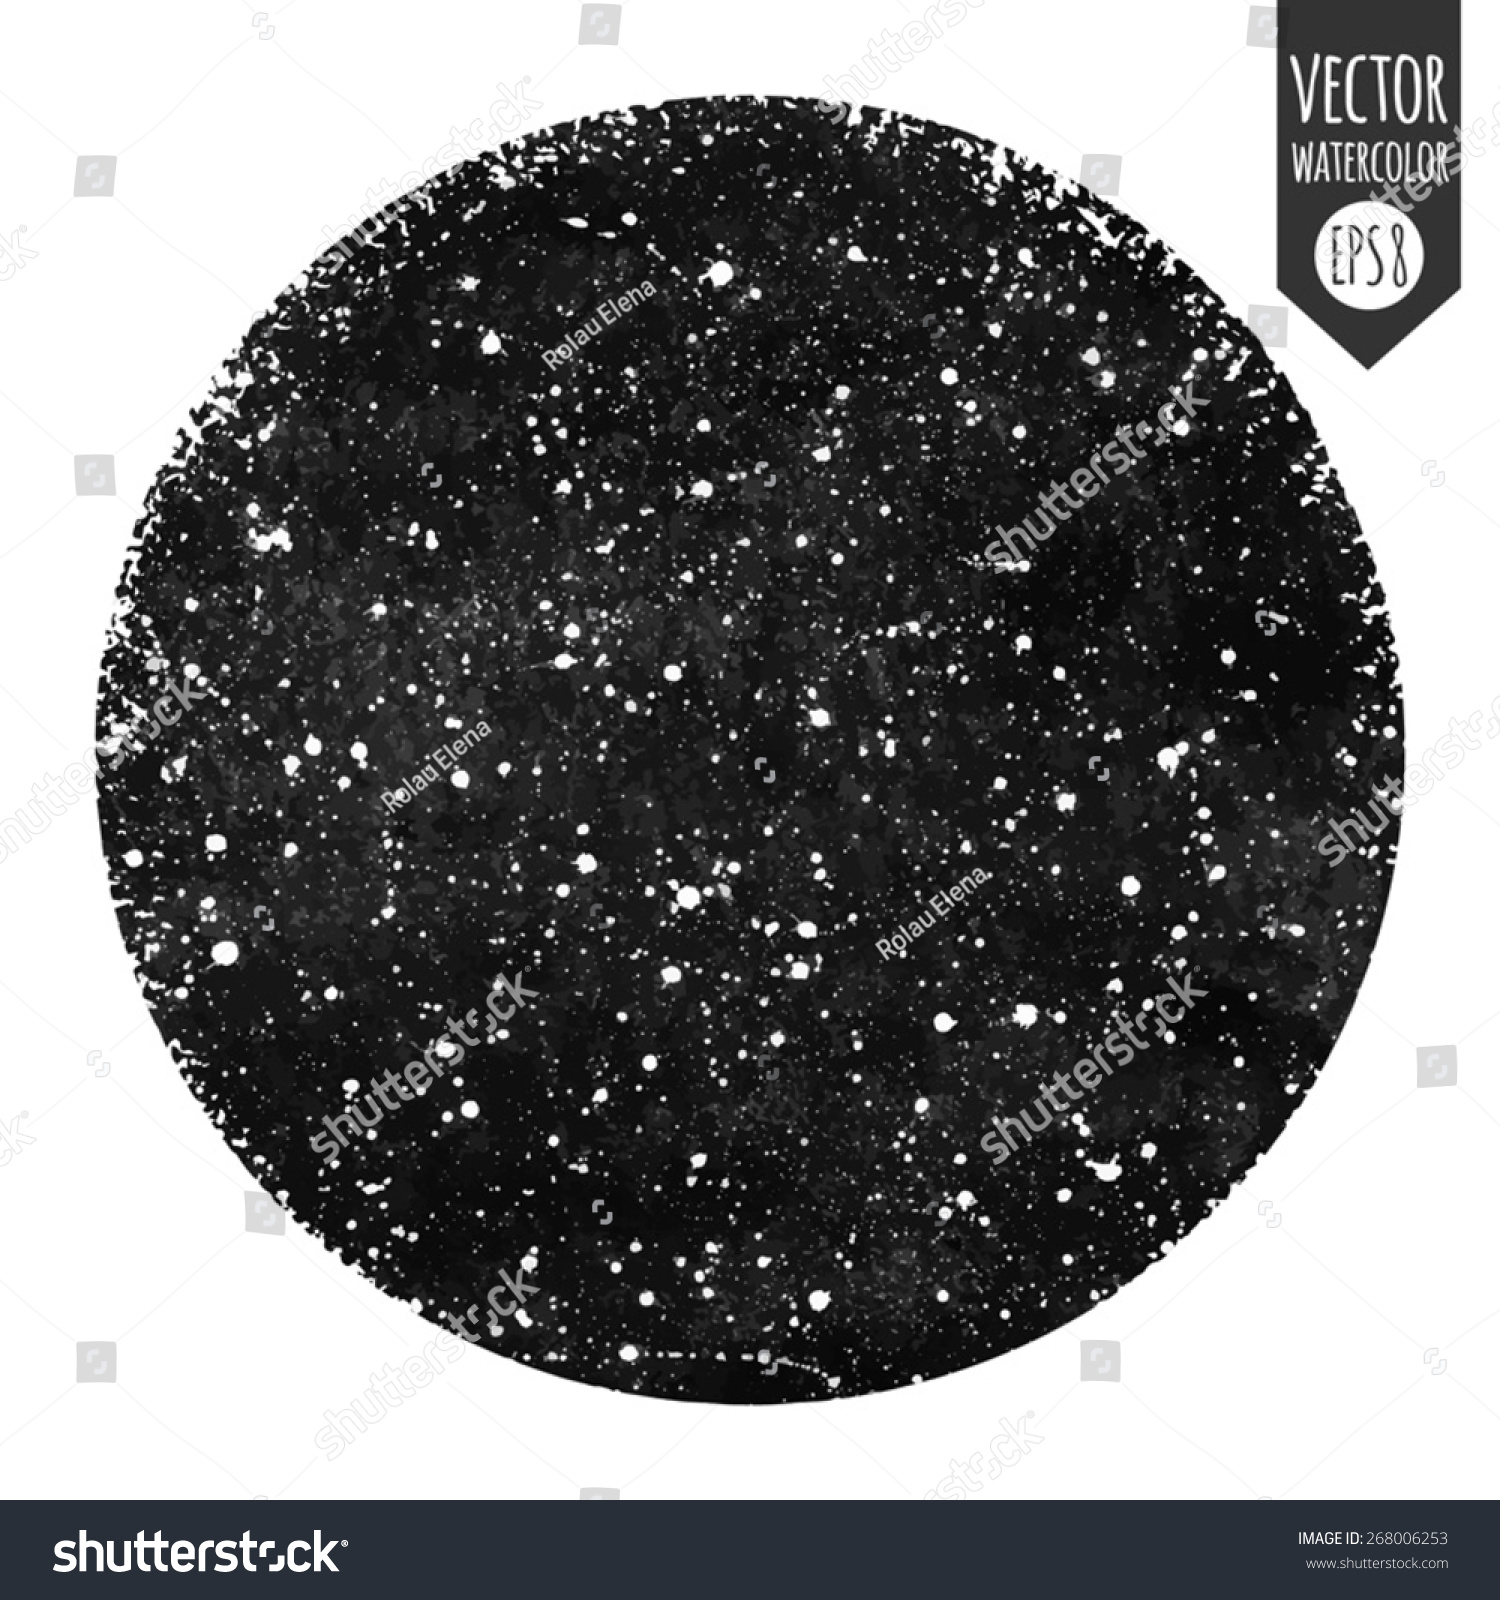 Watercolor Starry Sky Tutorial Stock Vector Black And White Hand Drawn Watercolor